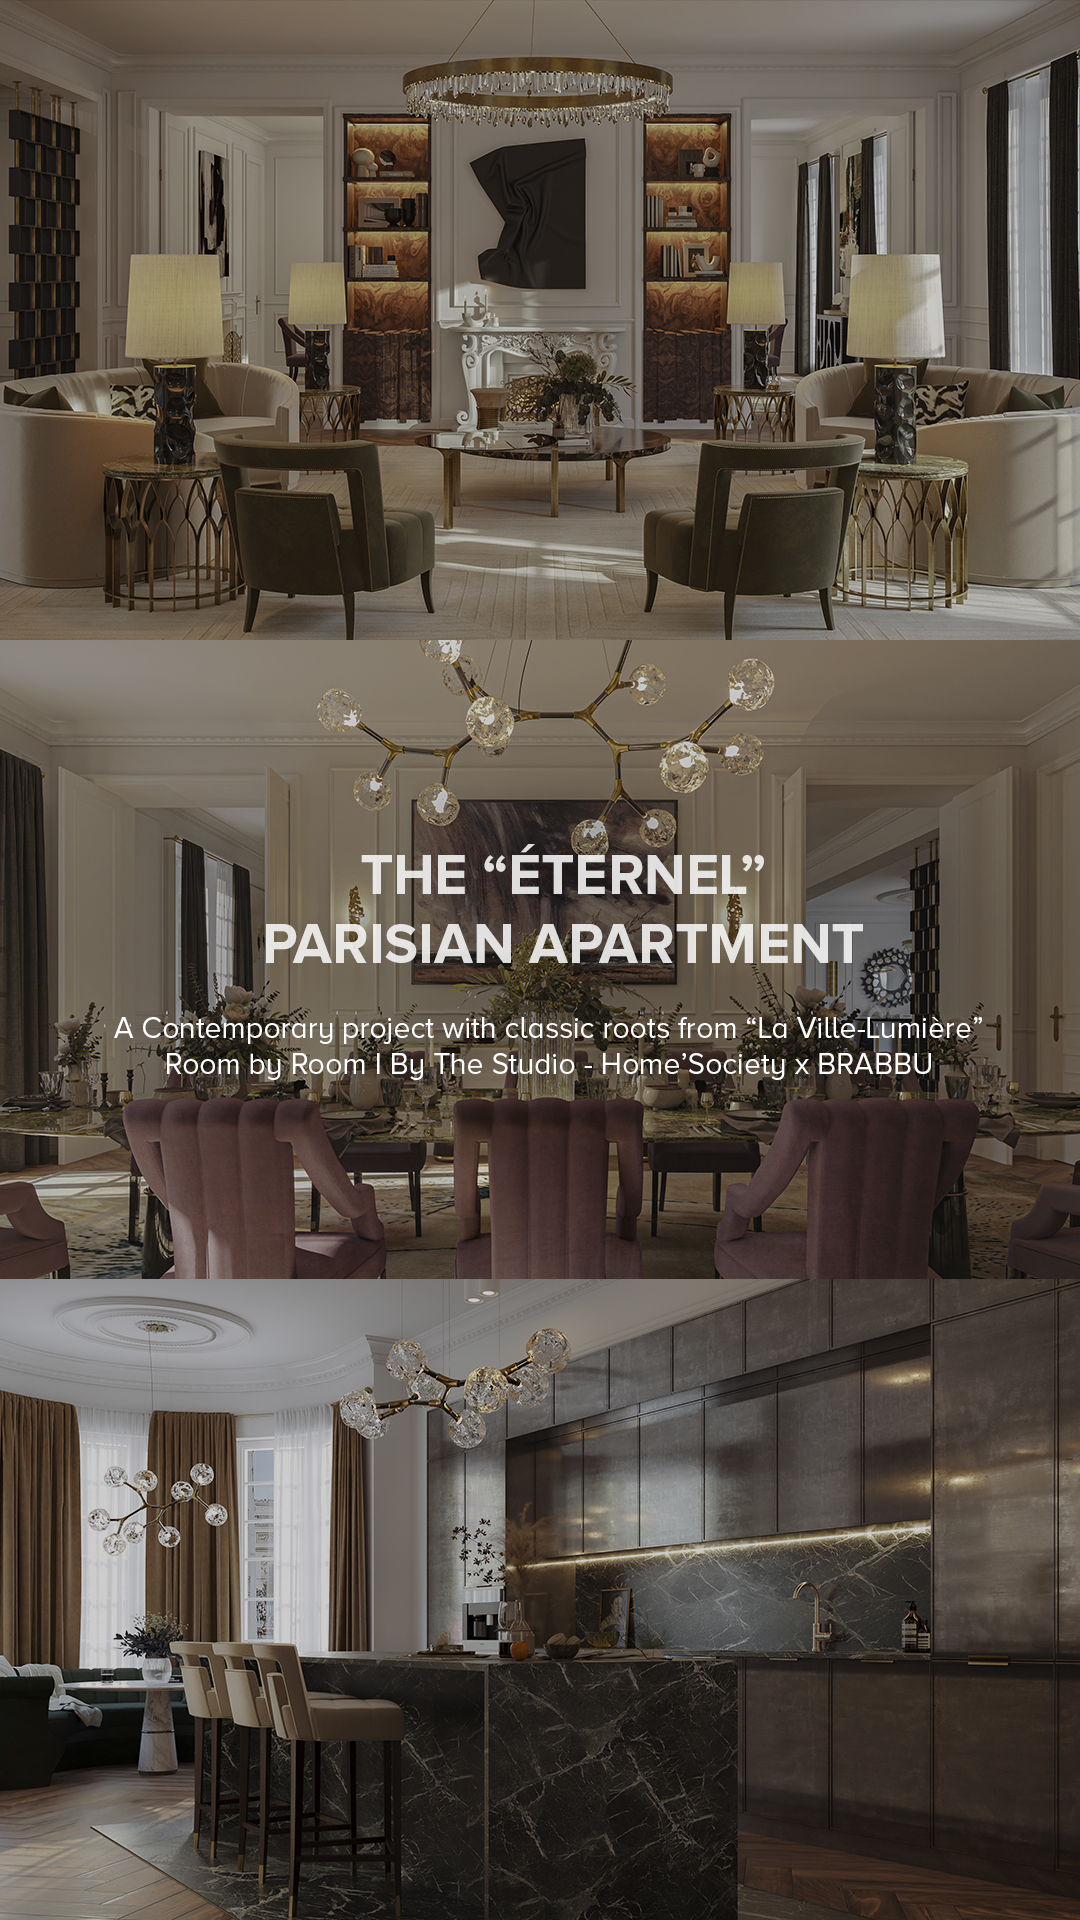 oasis living room Oasis Living Room: Discover The Perfect Retreat at The 'Eternel' Parisian Apartment story 3 1